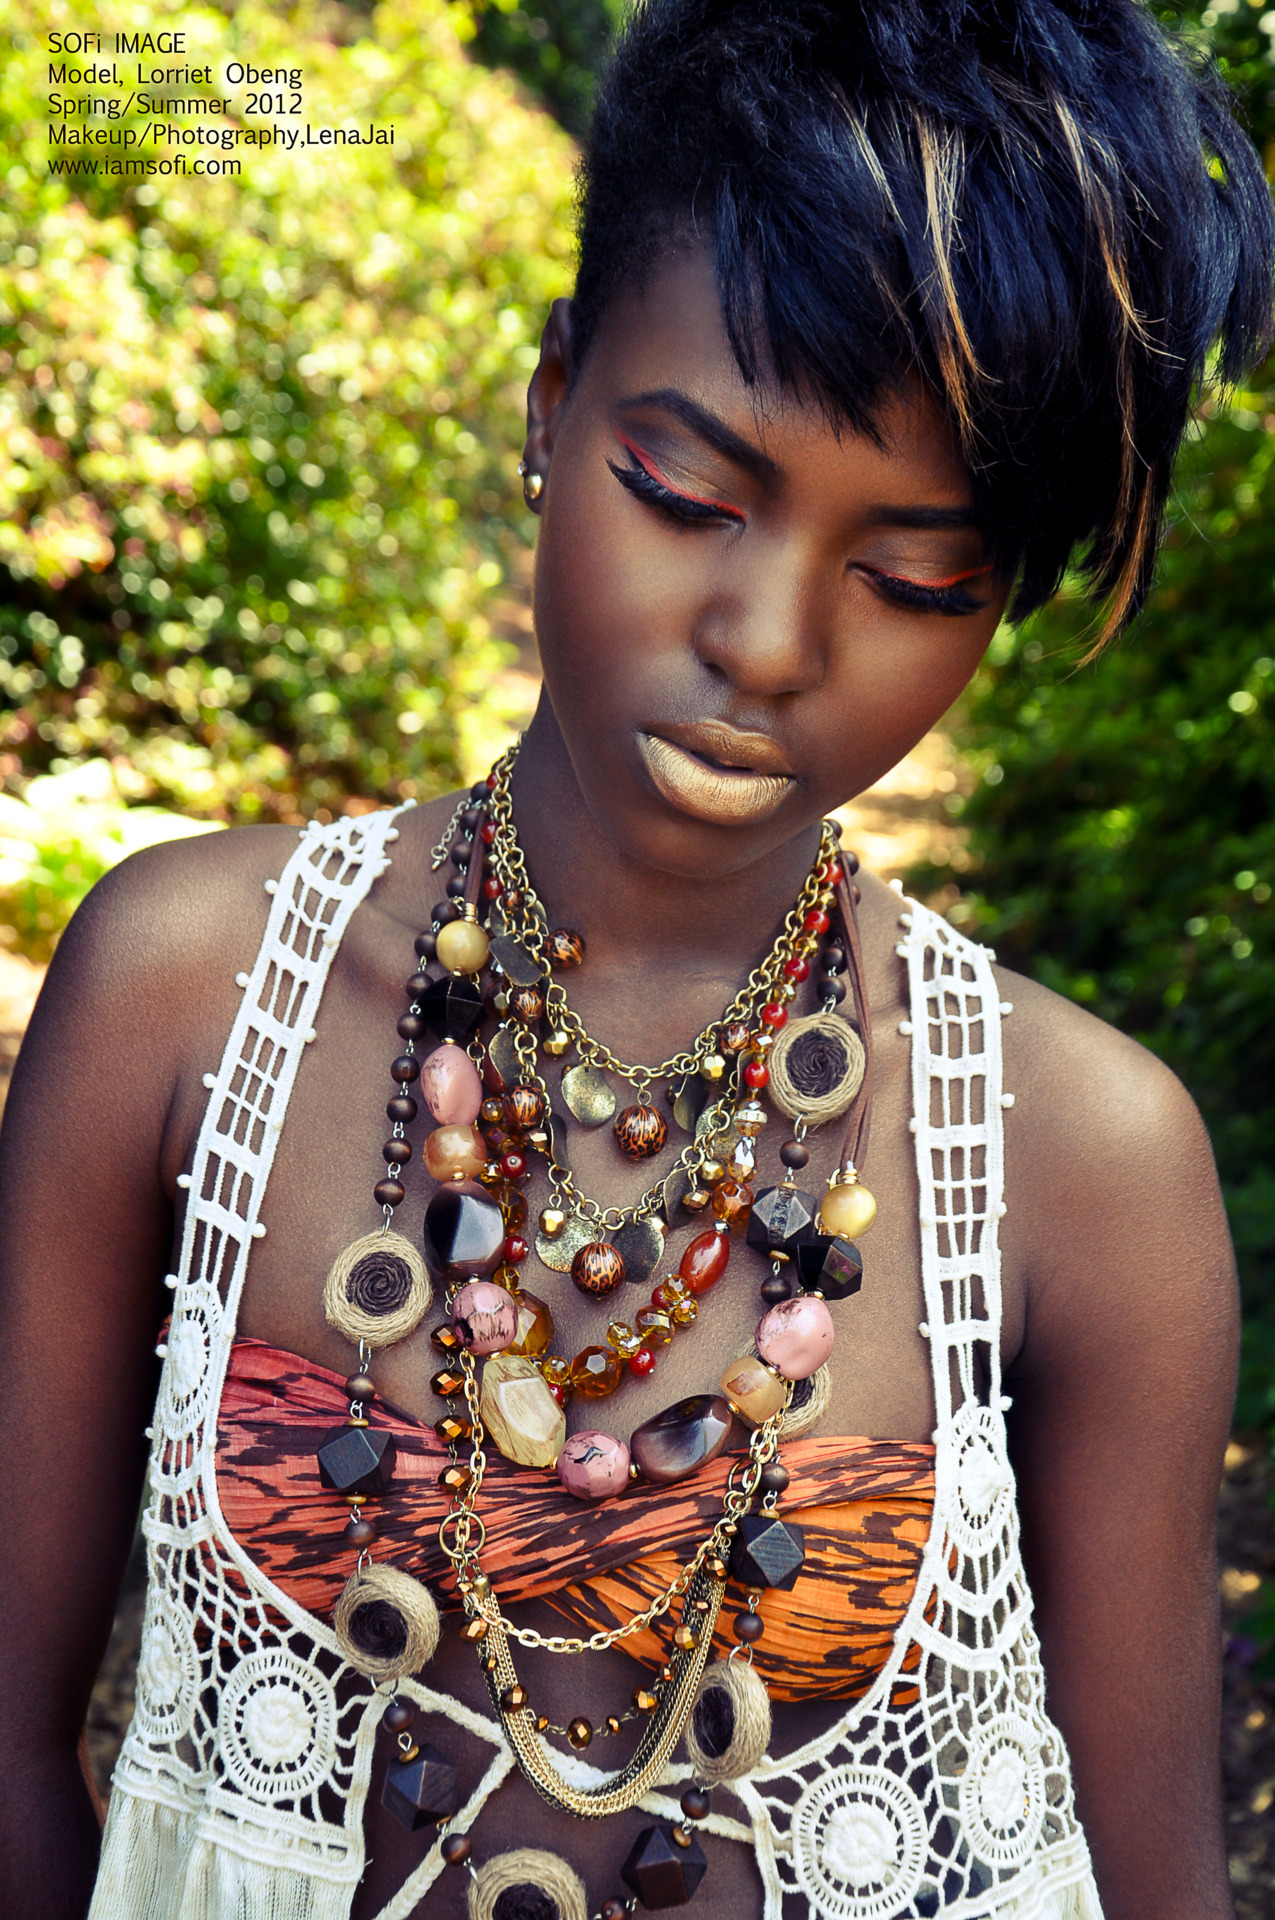 Today was a great day…enjoyed working with model Lorriet Obeng. Makeup/Styling/Photography: Lena Jai @SOFi_IMAGE